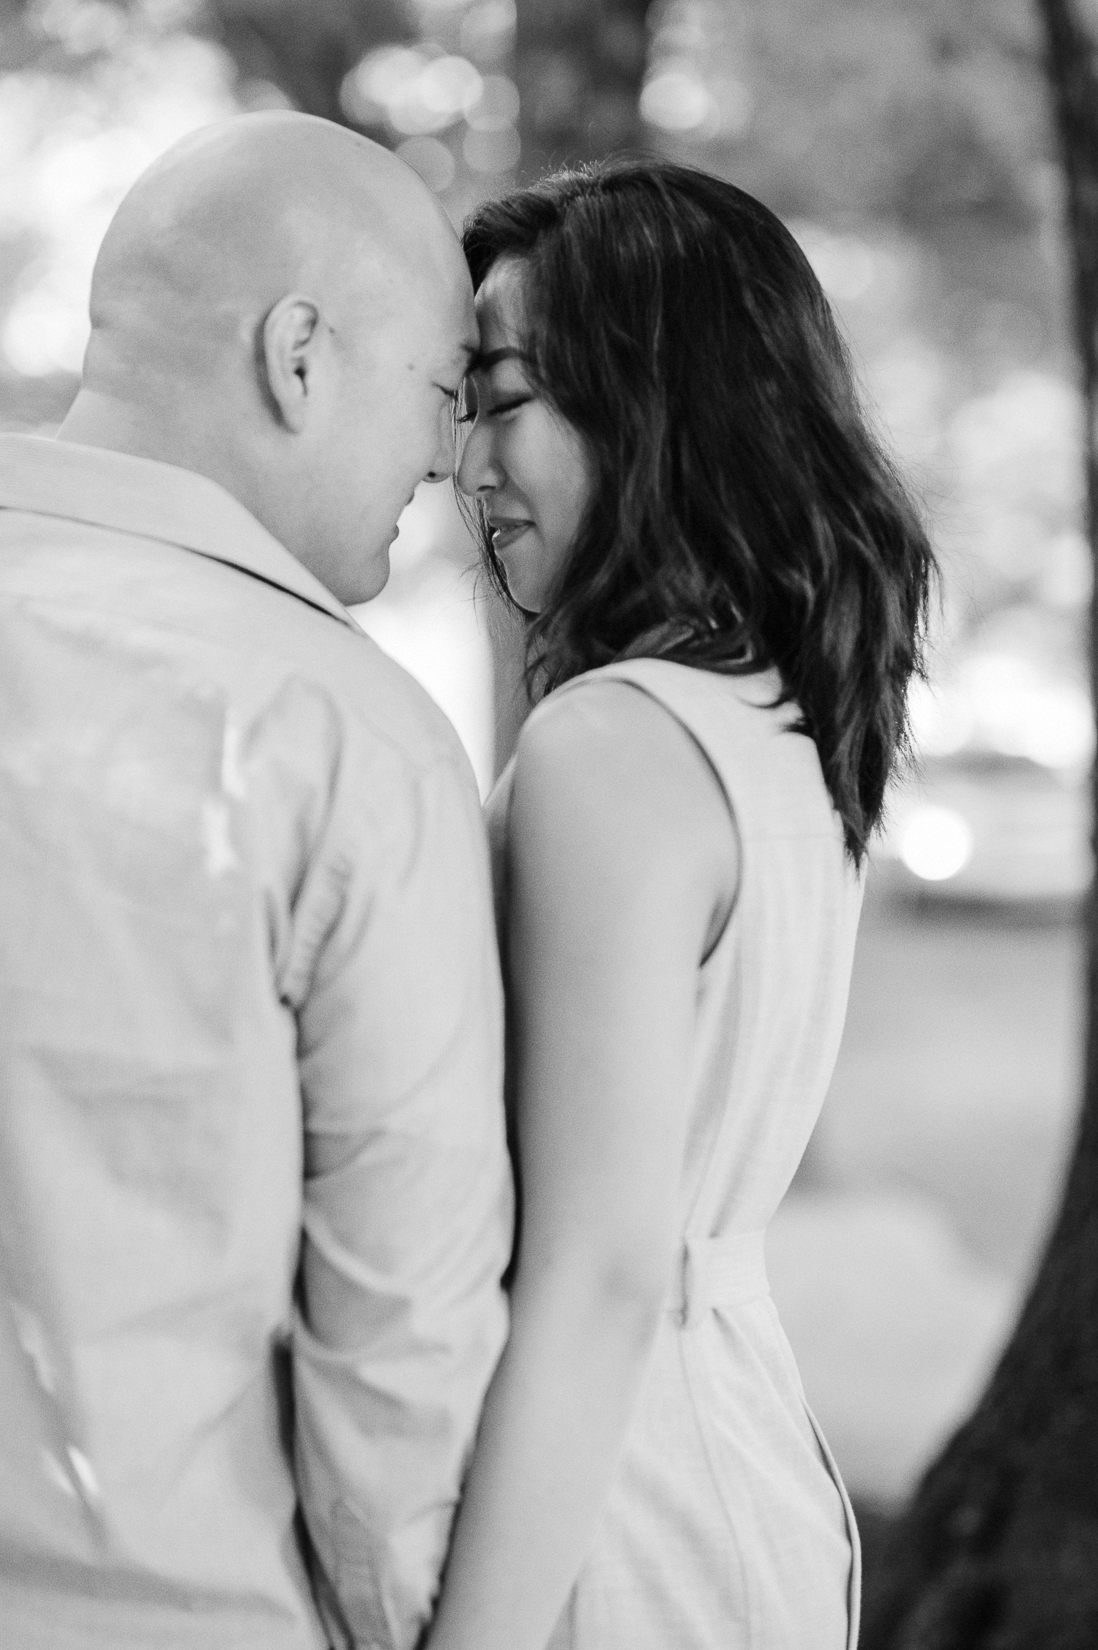 engagement_downtown_fredericksburg_virginiaweddingphotographer_youseephotography_HelenPaul (7).jpg